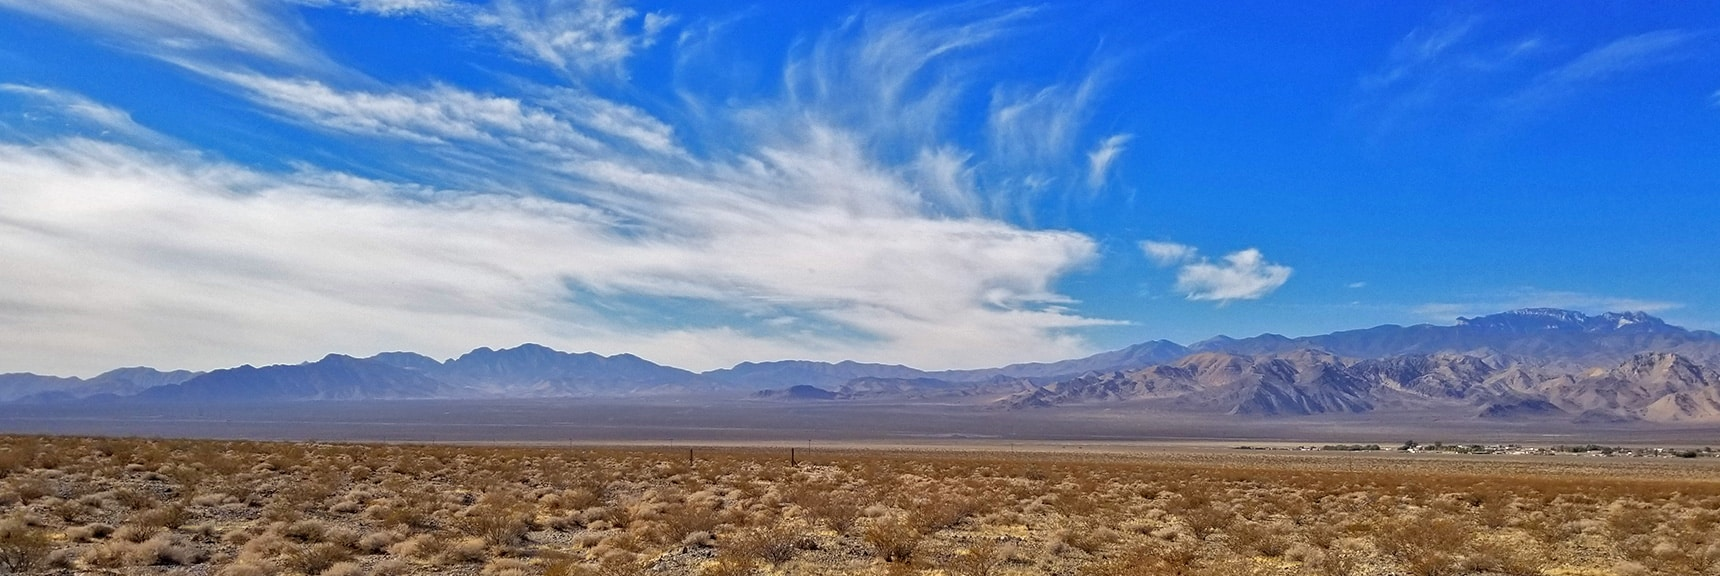 View Across the Valley Toward the Spring Mountains and La Madre Mountains | Smart Car Bike Rack and Mountain Bike Test, Sheep Range, Nevada